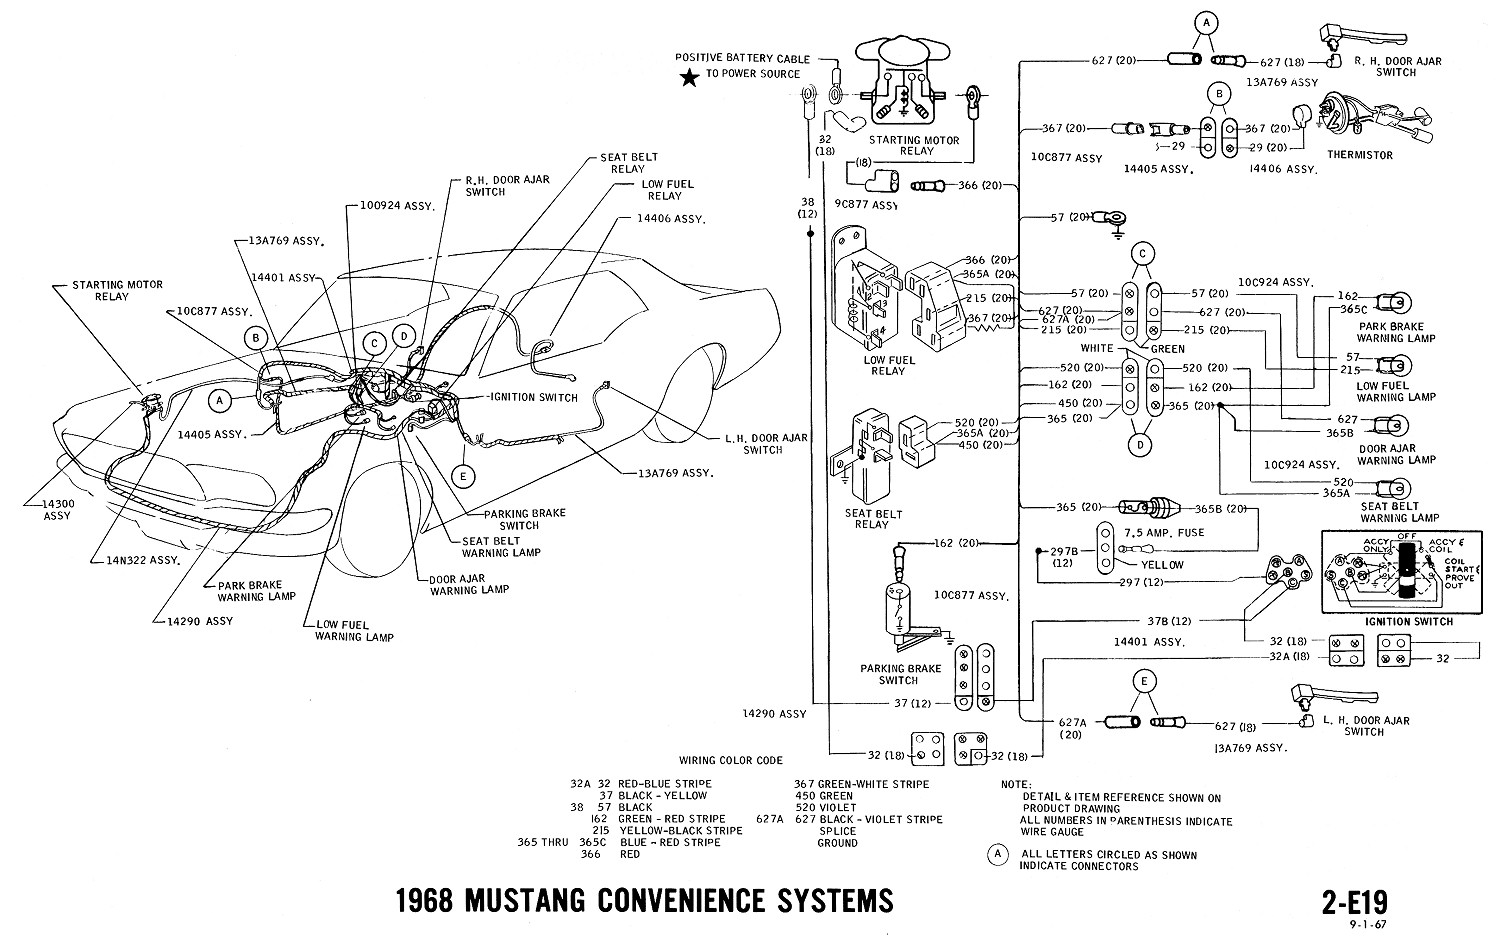 1968 Corvette Alternator Diagram Wiring Schematic Library 1944 Ford Truck Mustang Convenience Systems